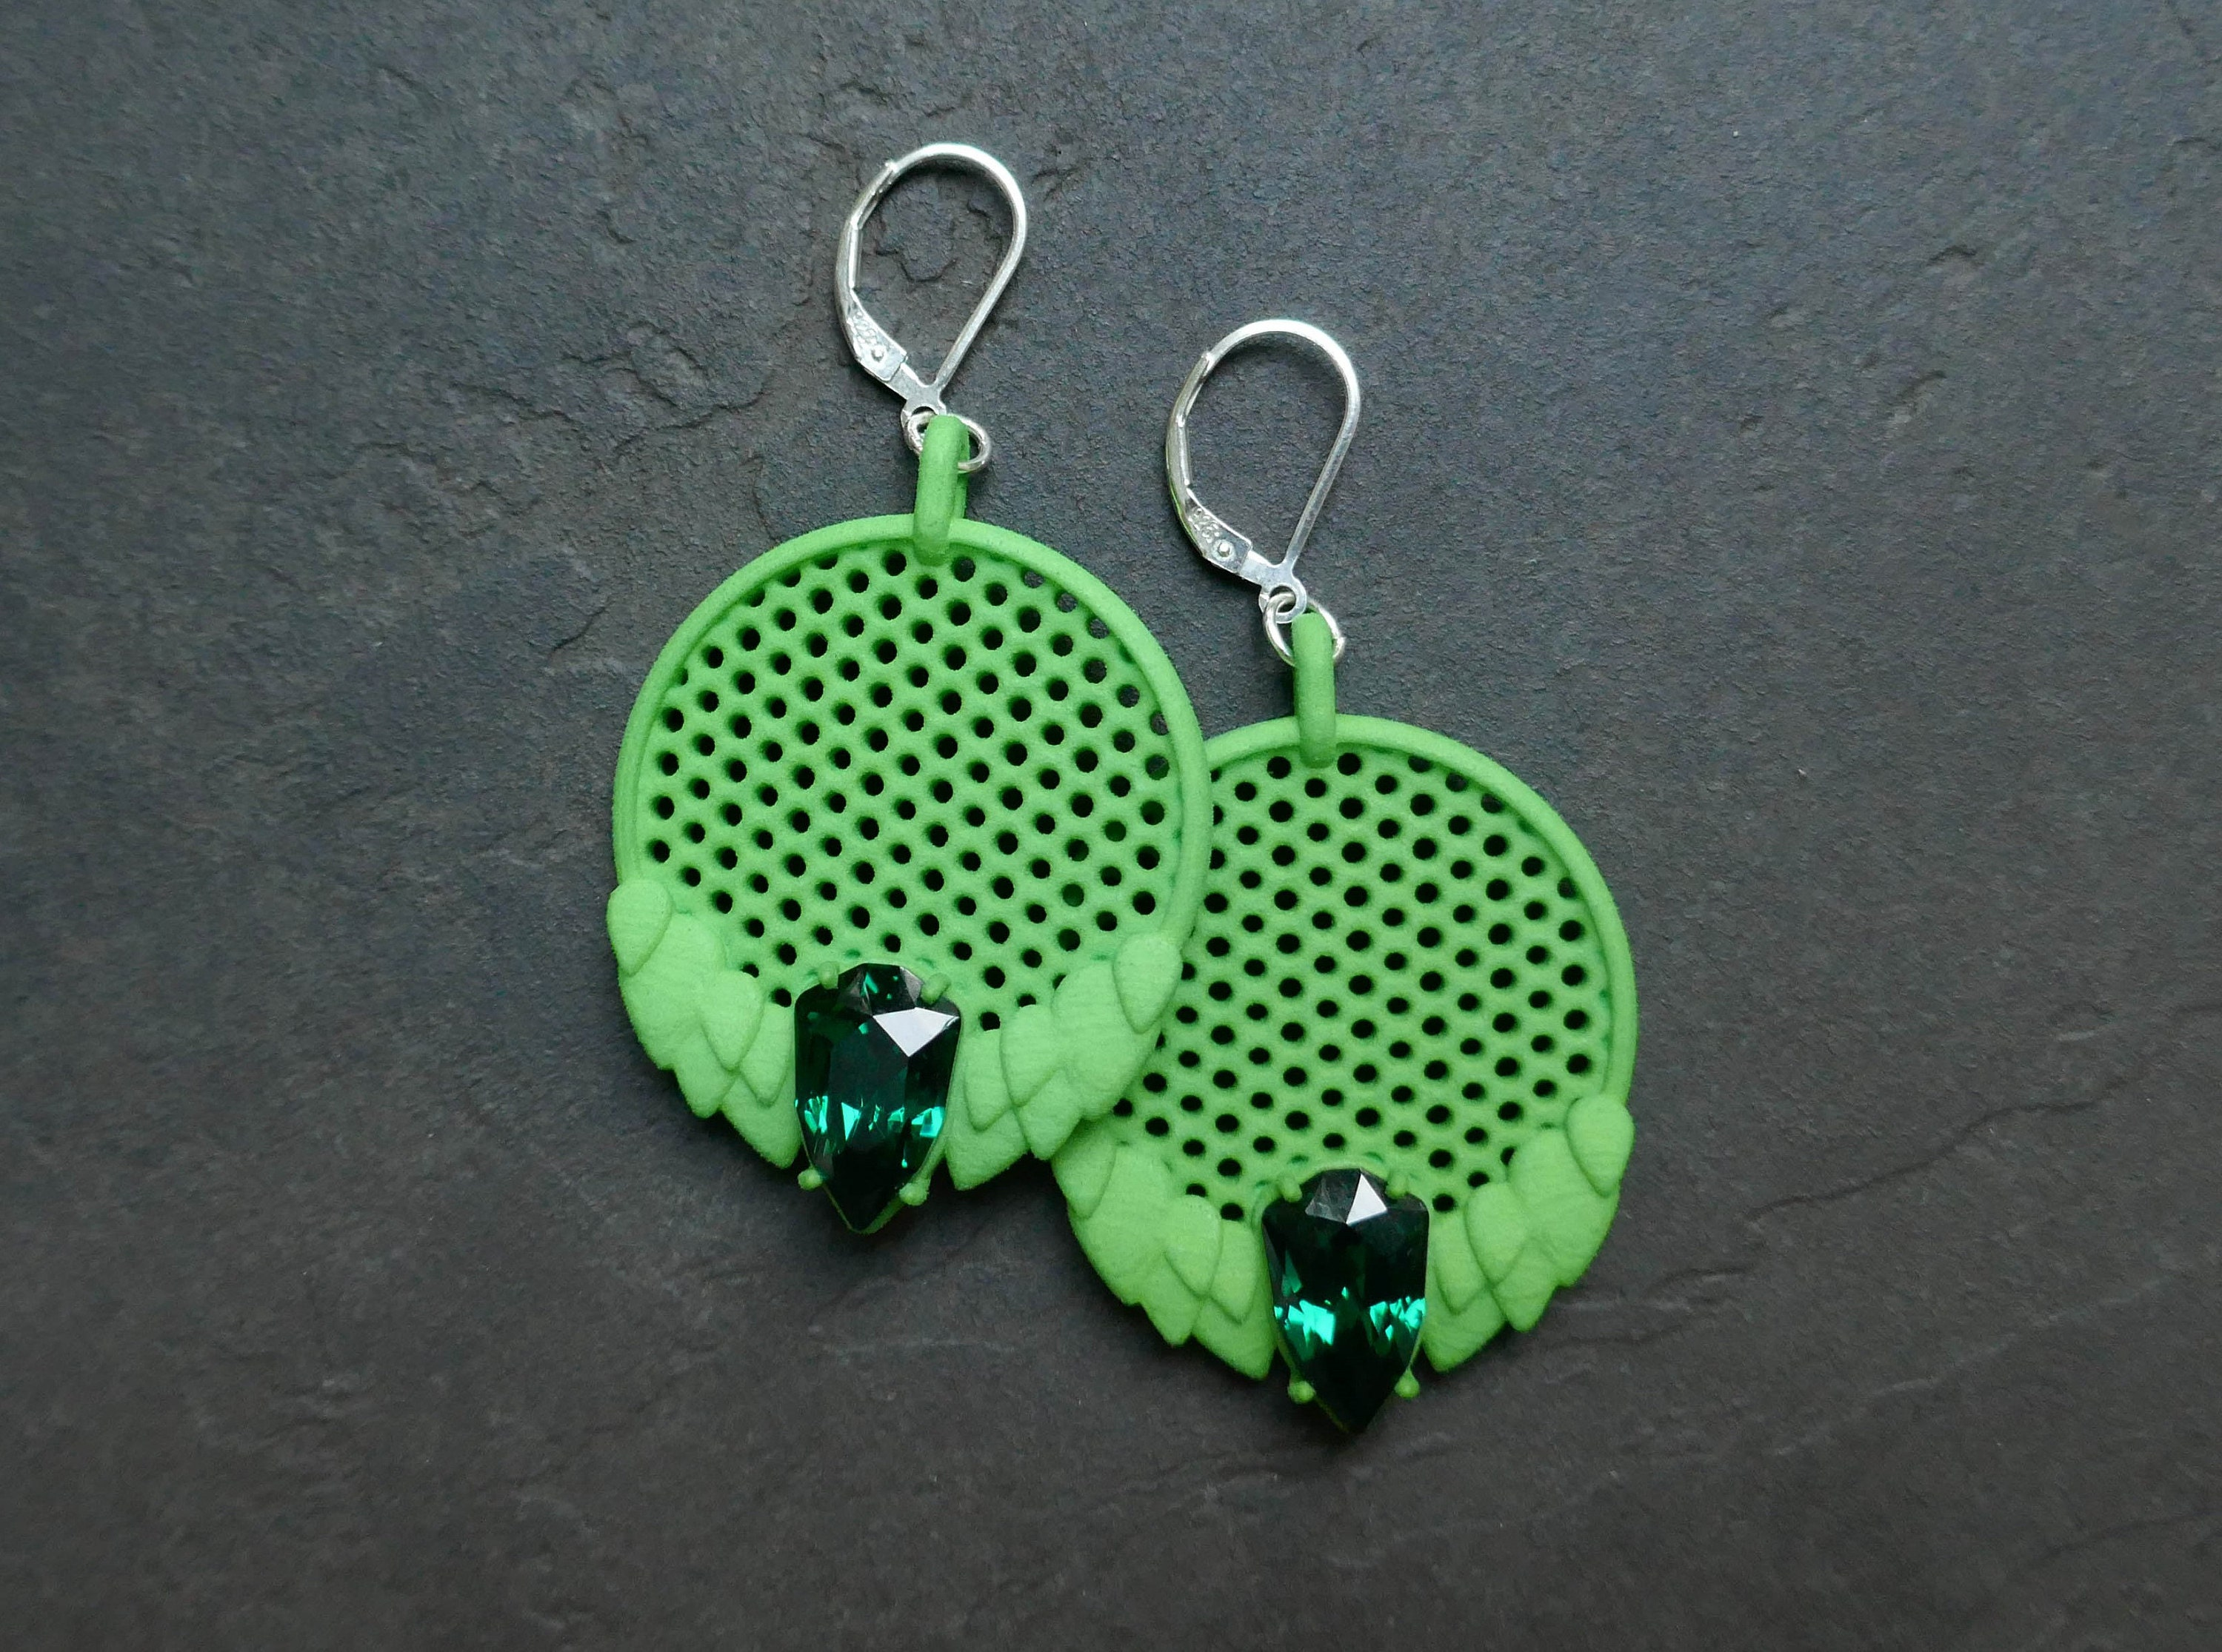 3D Printed Green Earrings with Swarovski Crystals